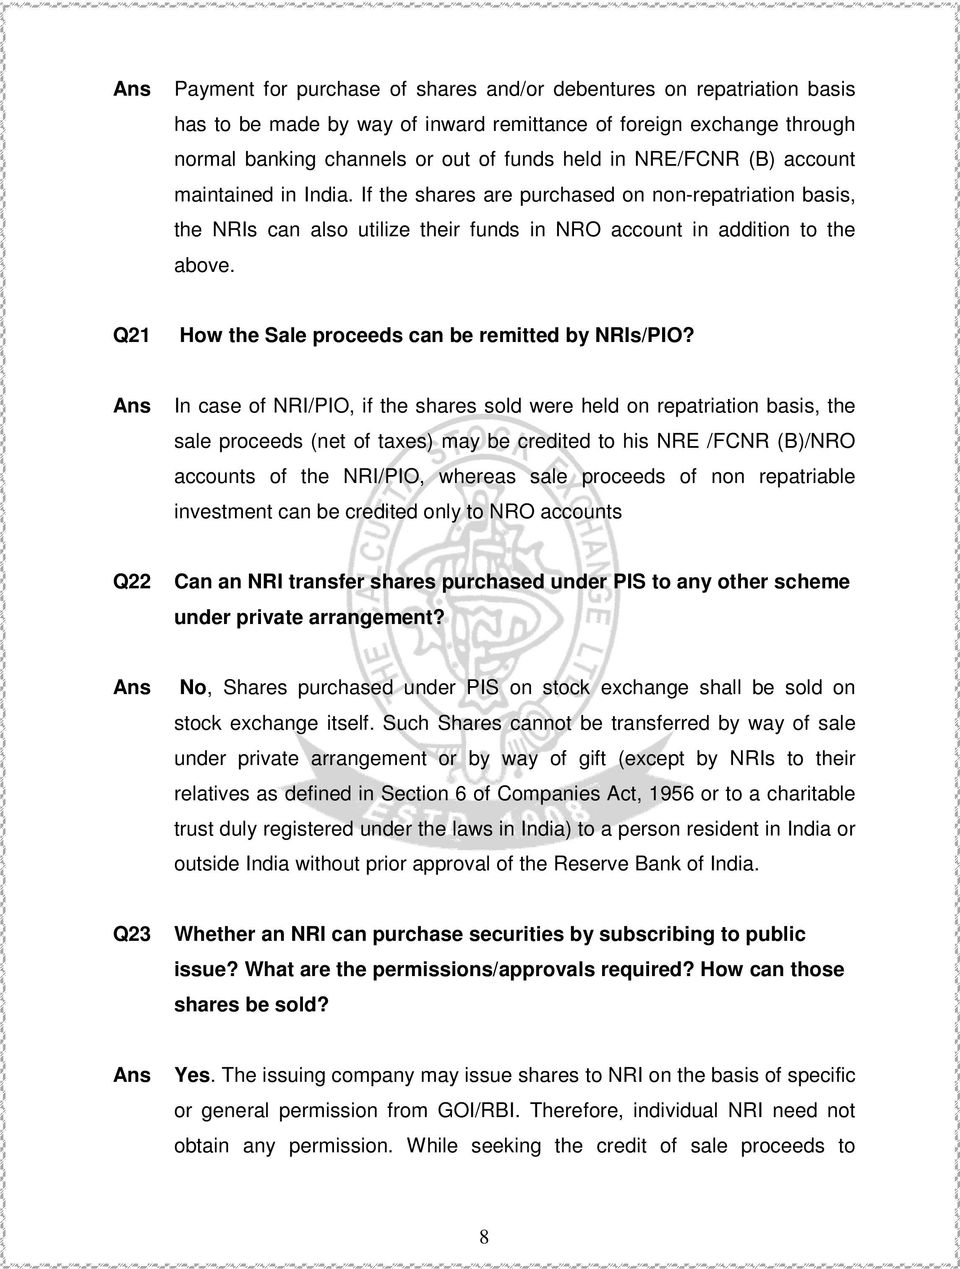 Q21 How the Sale proceeds can be remitted by NRIs/PIO?